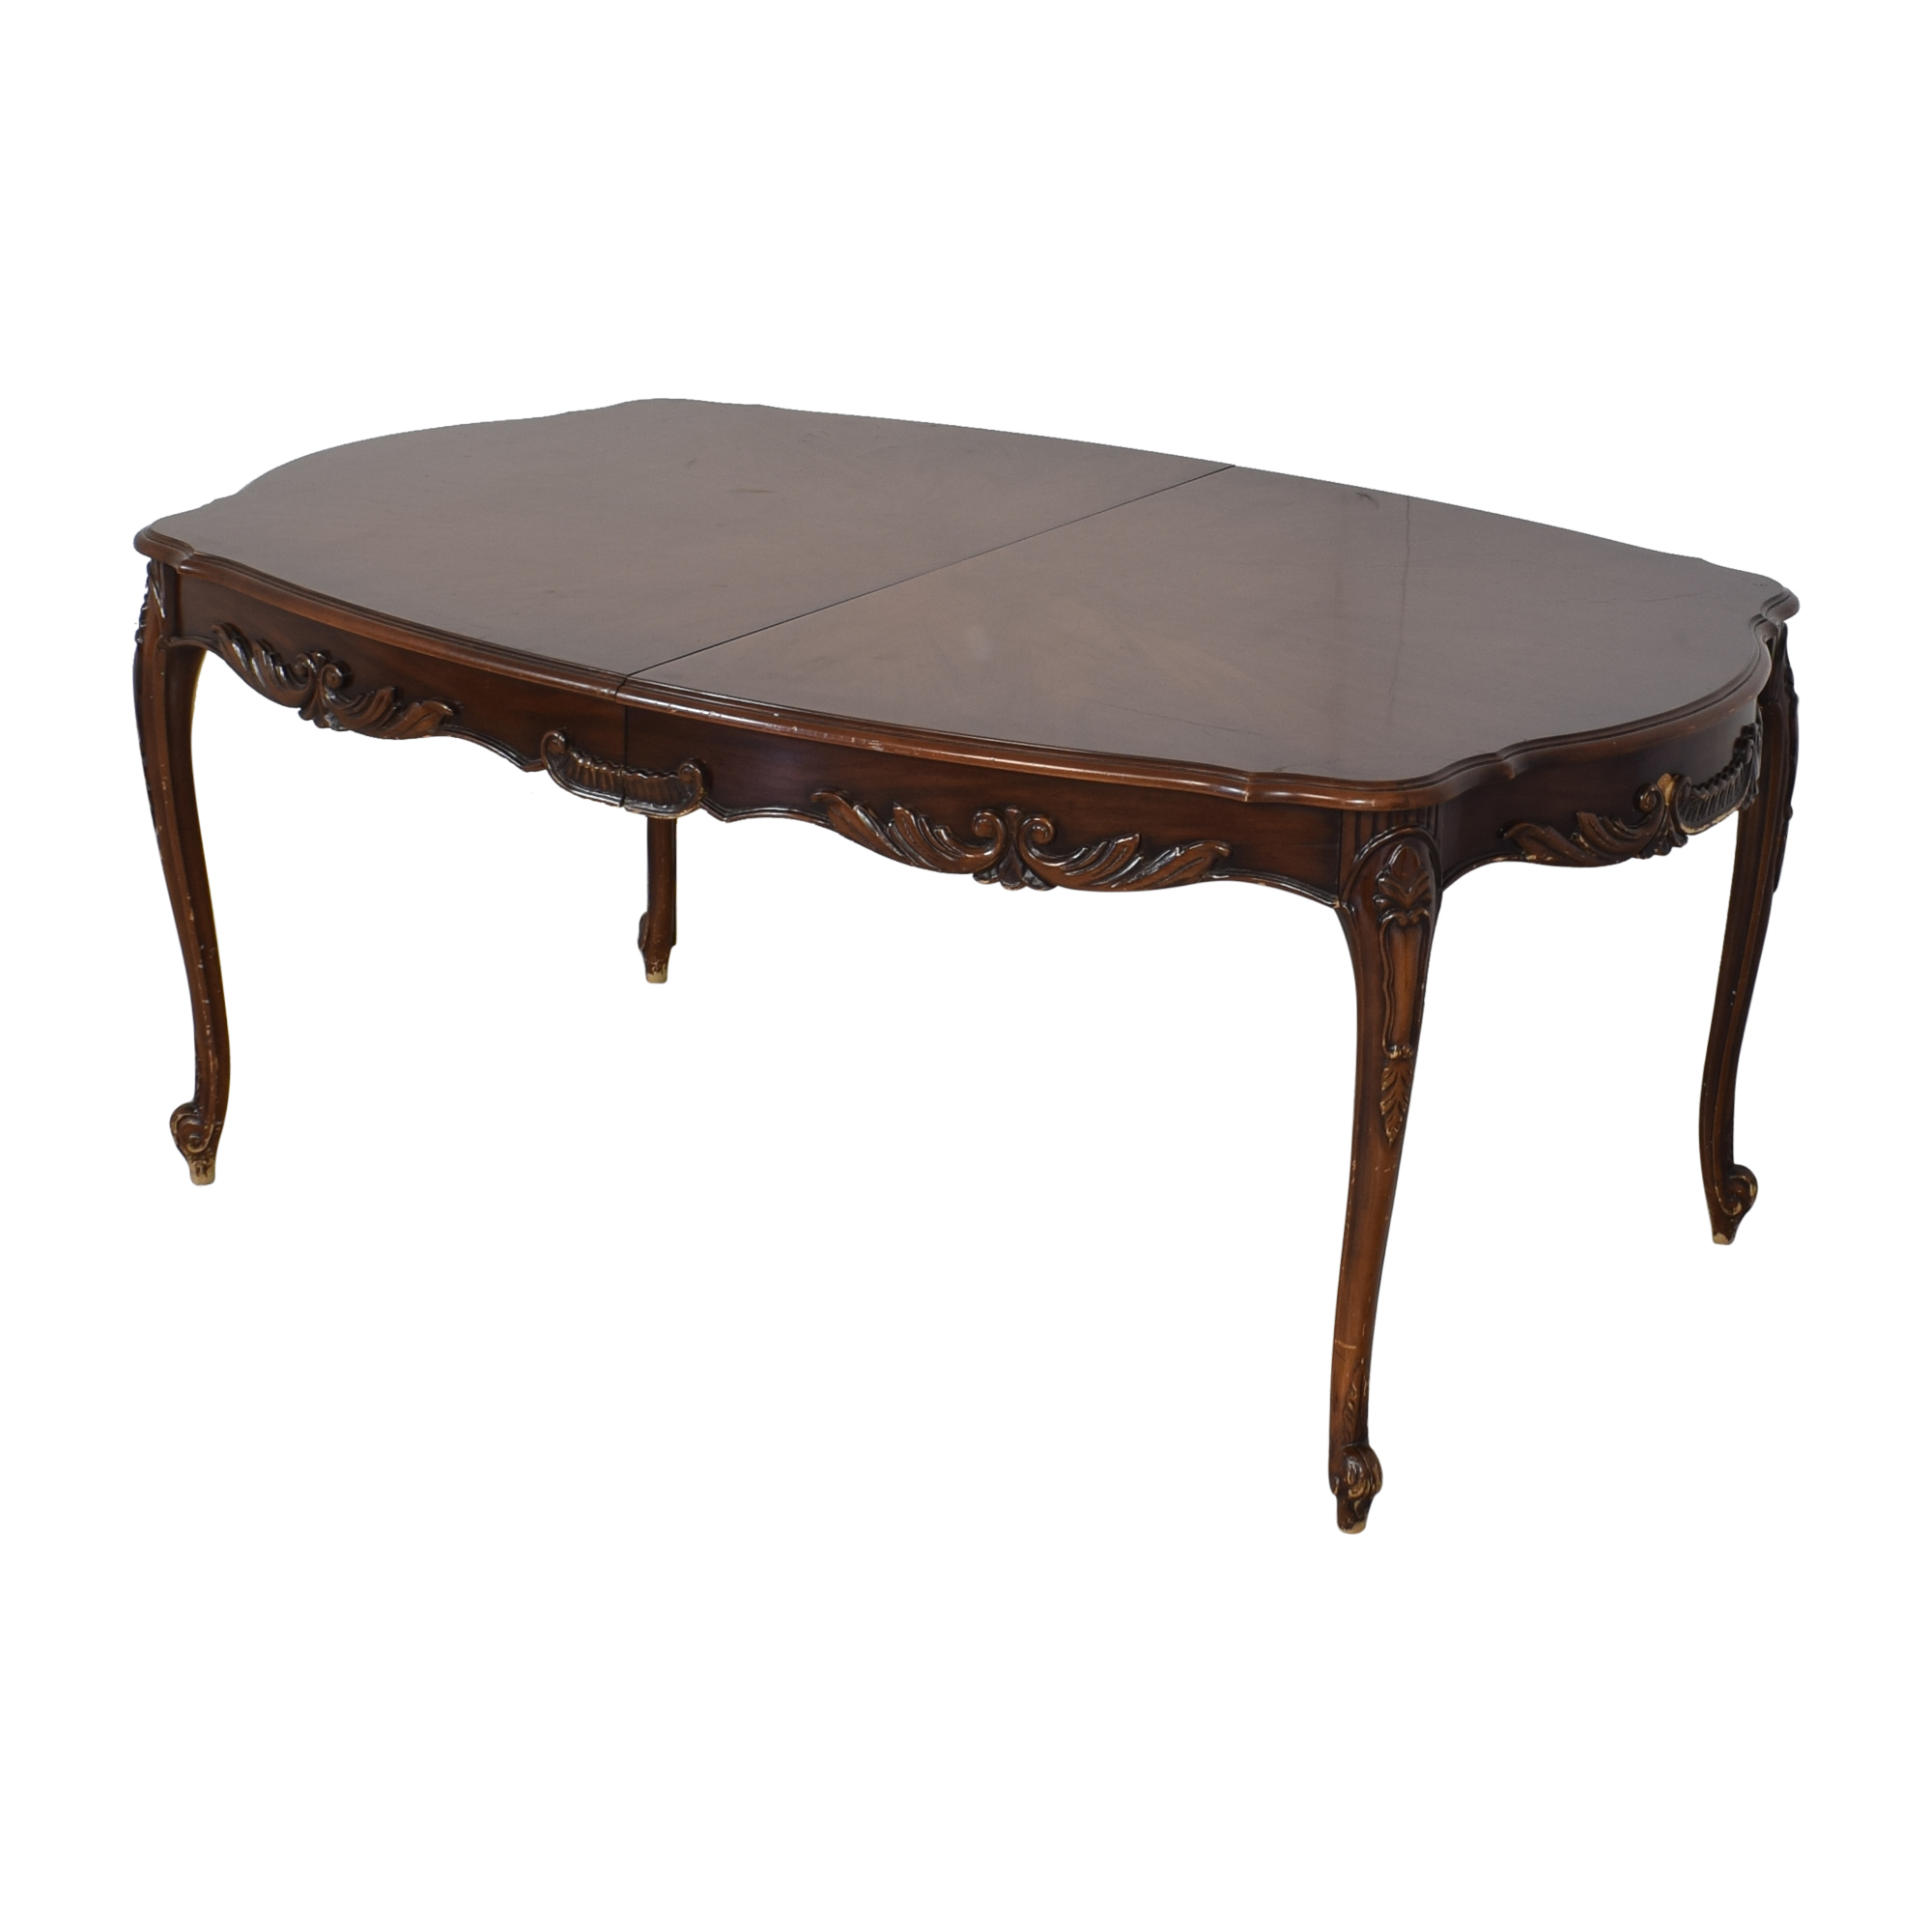 buy Union National Dining Table Union National Tables